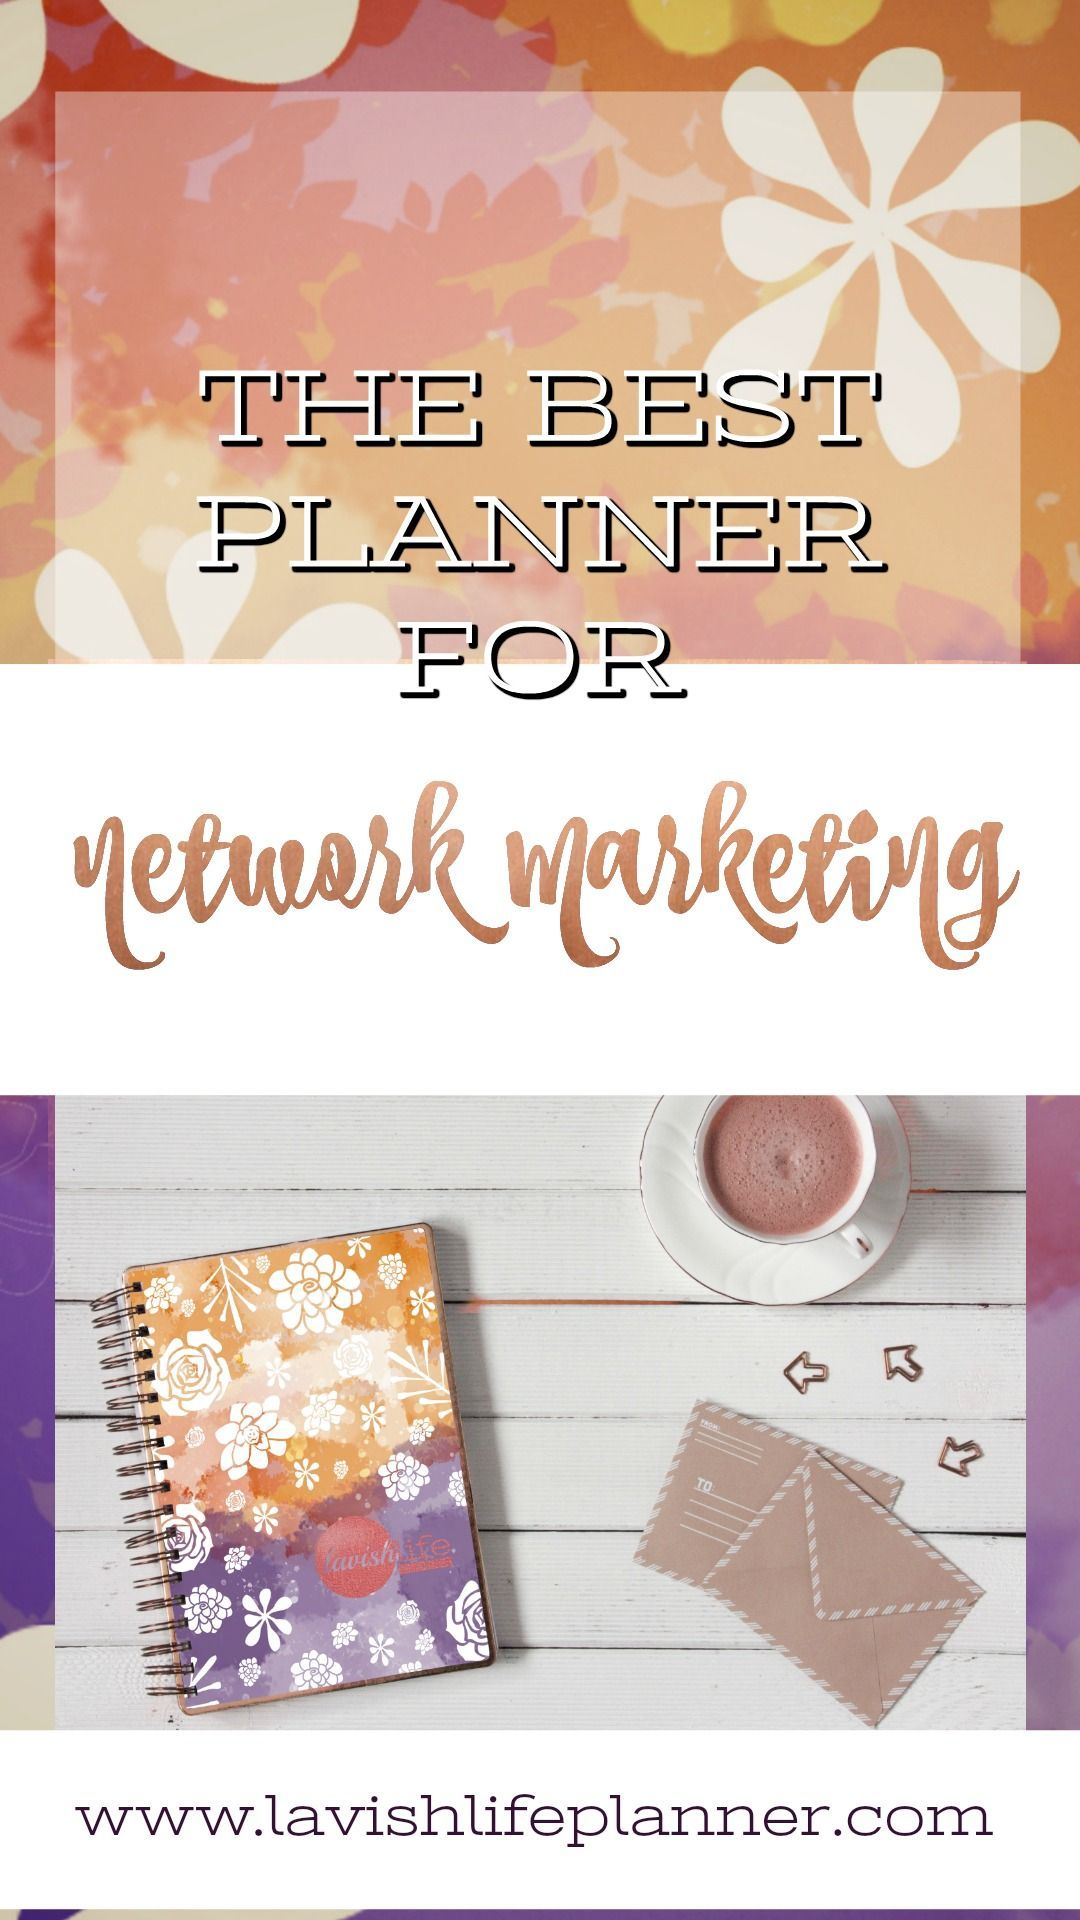 The Best Planner for Network Marketing Schedule Promos